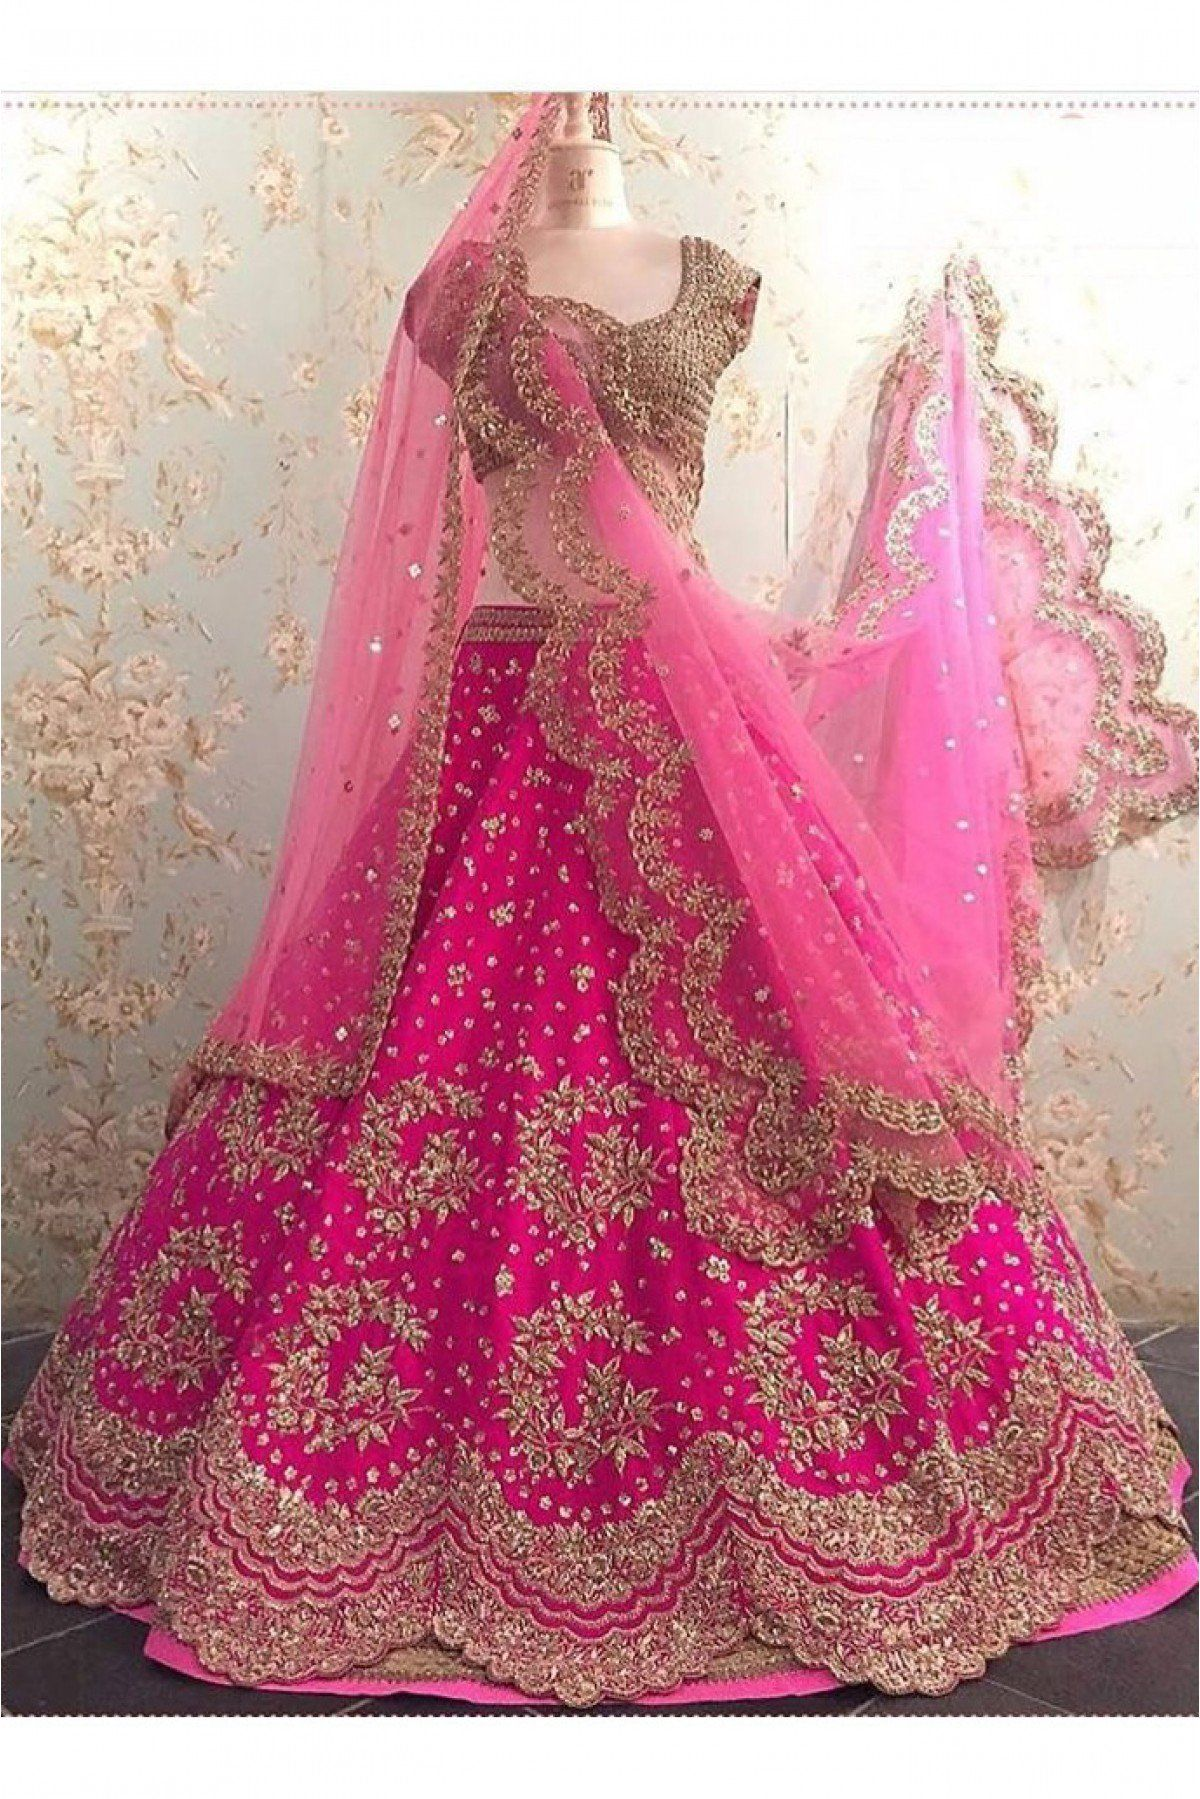 9d81a00e33 Buy Dhupion Silk Lehenga Choli In Pink Colour @ ninecolours.com. Free  Shipping in India available!